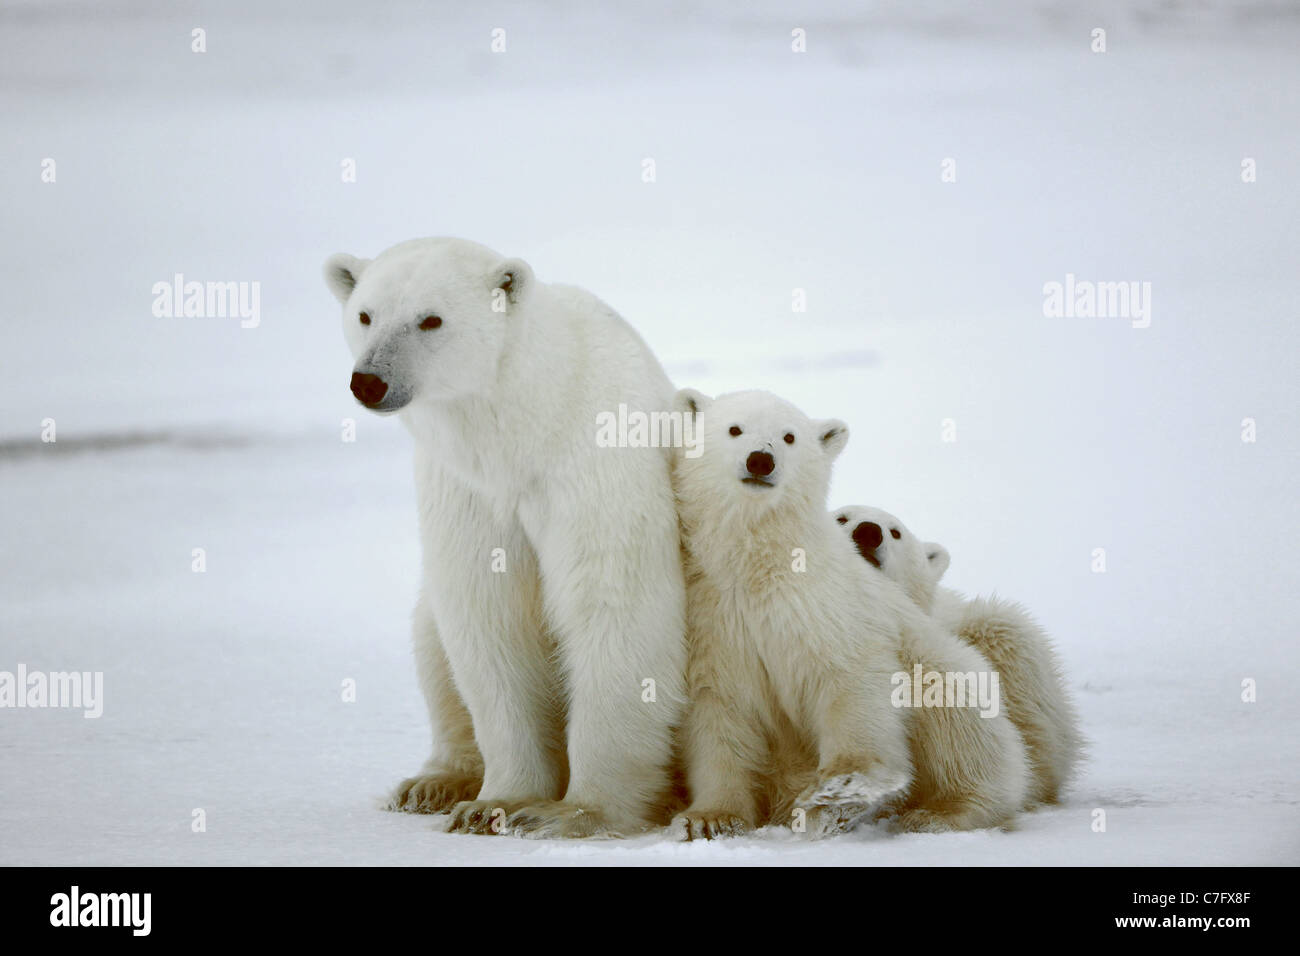 Polar she-bear with cubs. The polar she-bear with two kids on snow-covered coast. - Stock Image